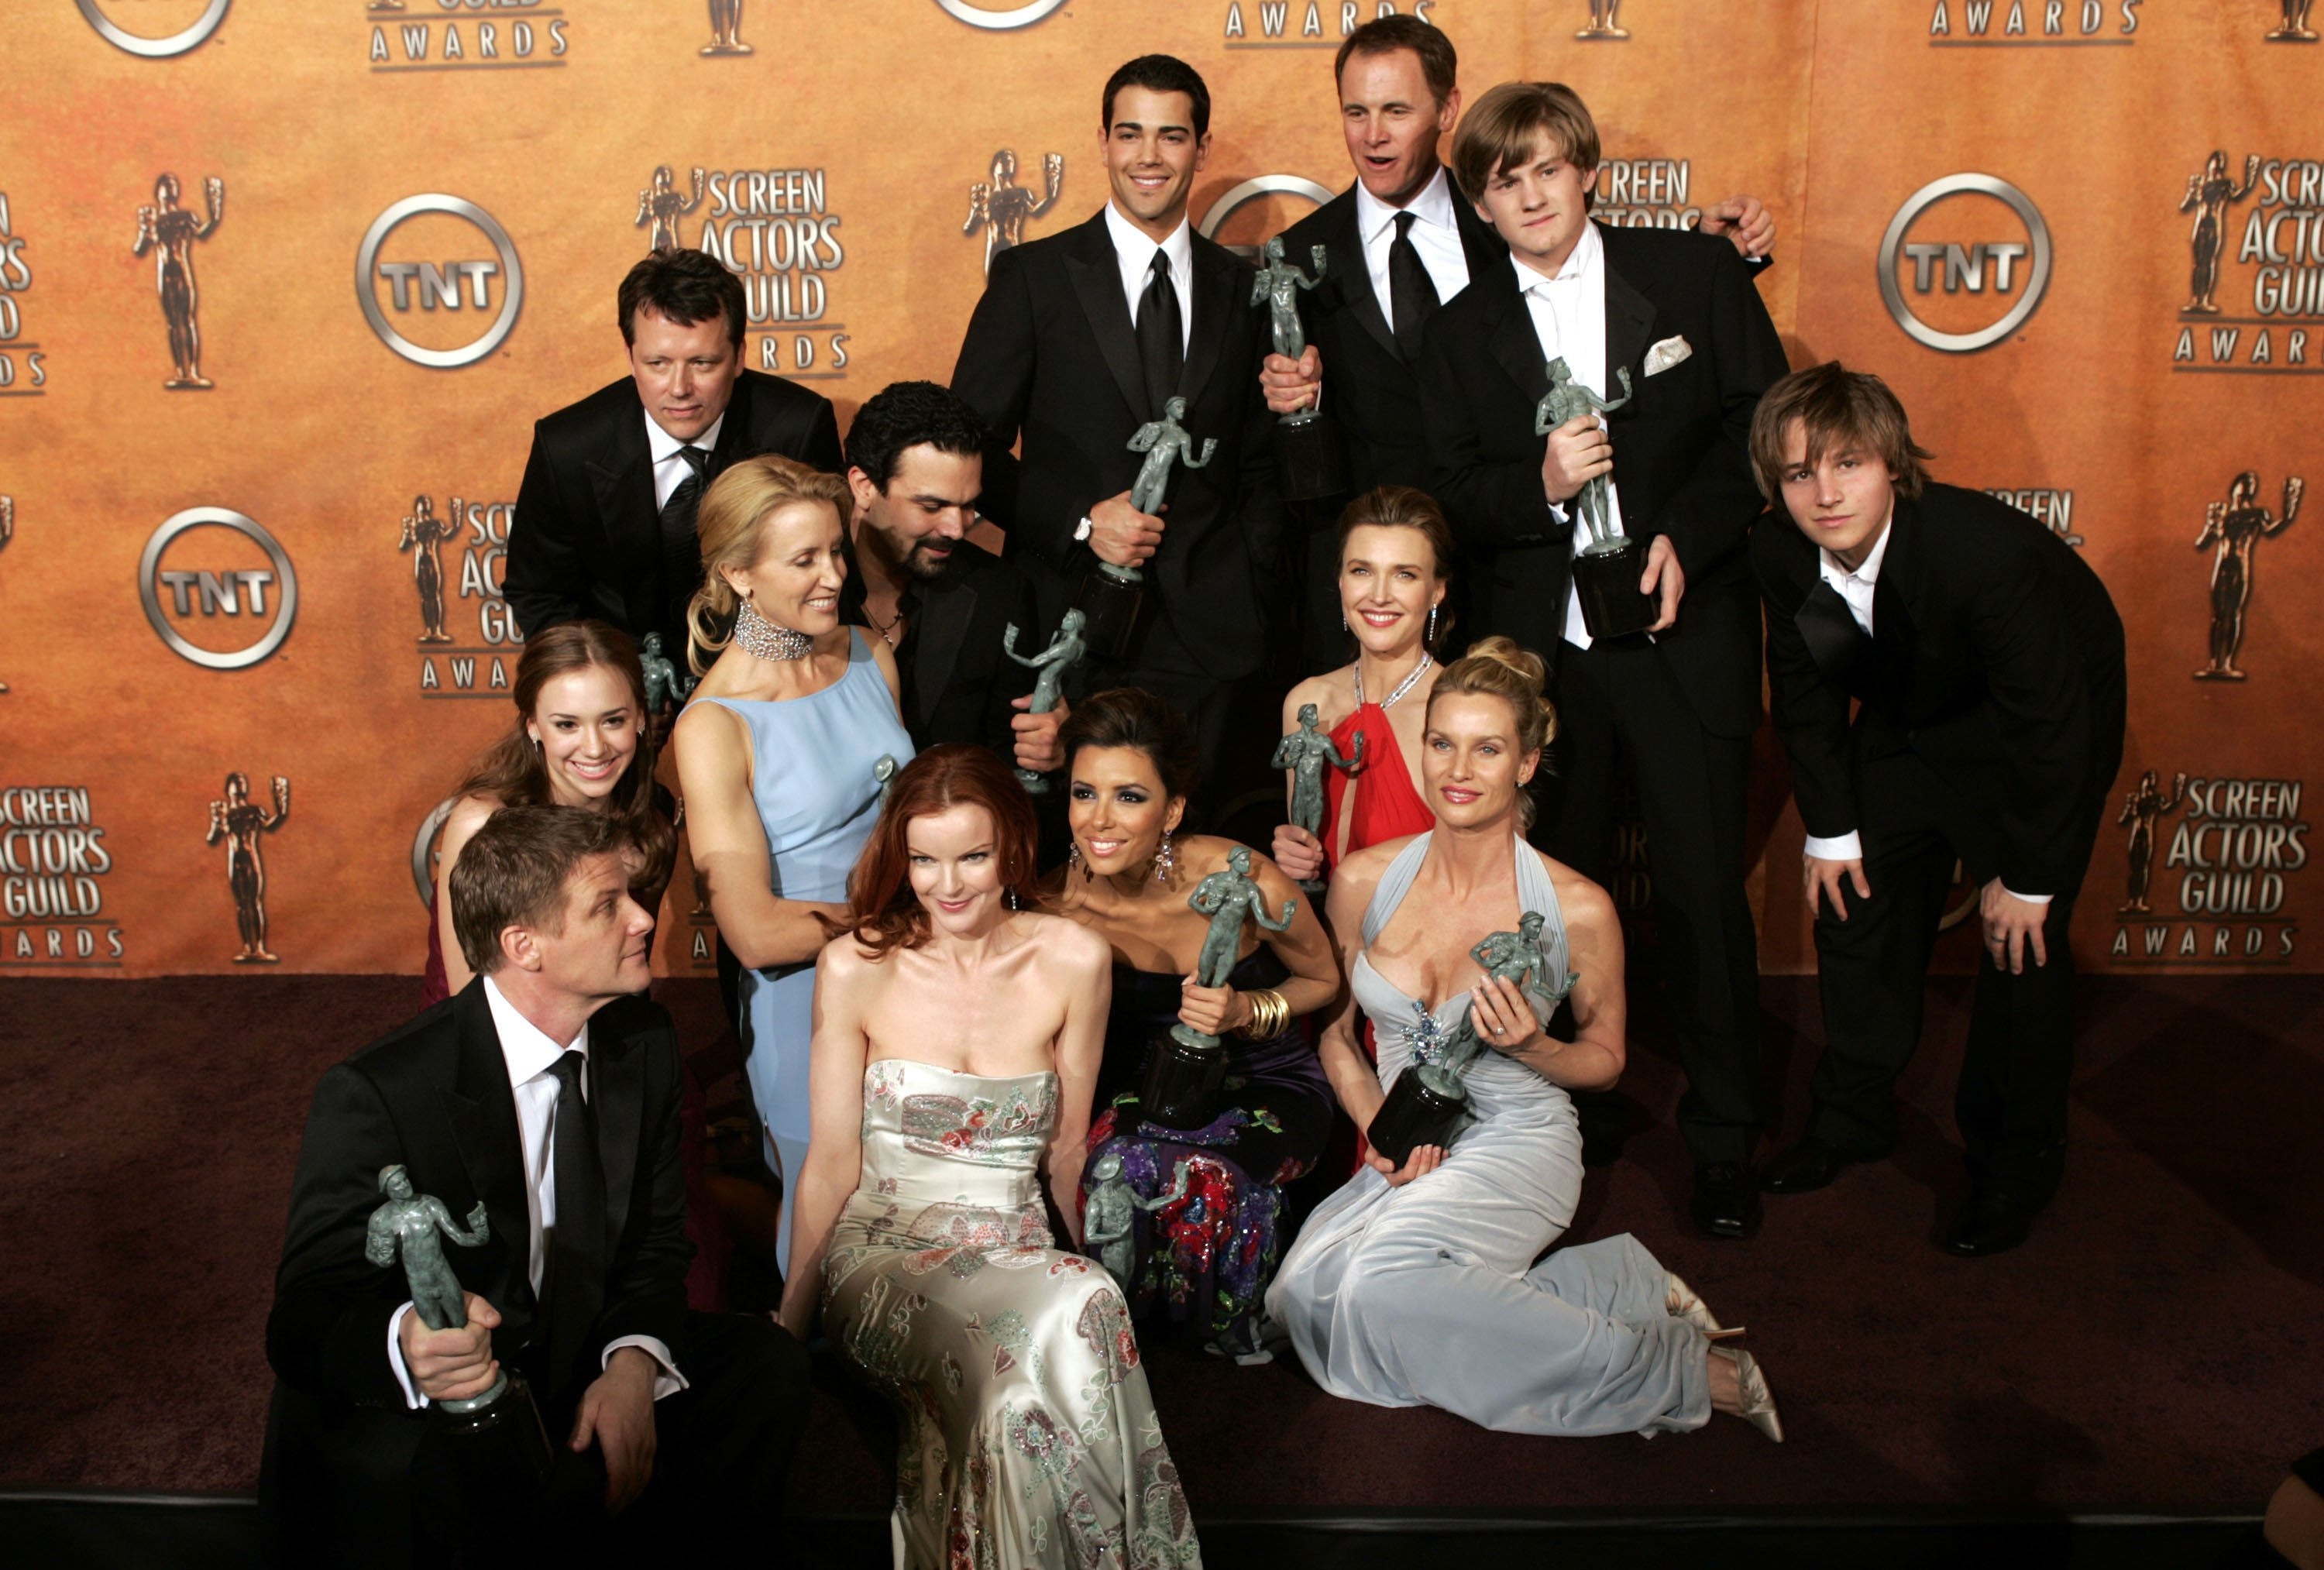 """The cast of """"Desperate Housewives"""" poses with their SAG Awards at the 11th Annual SAG Awards, 2005 